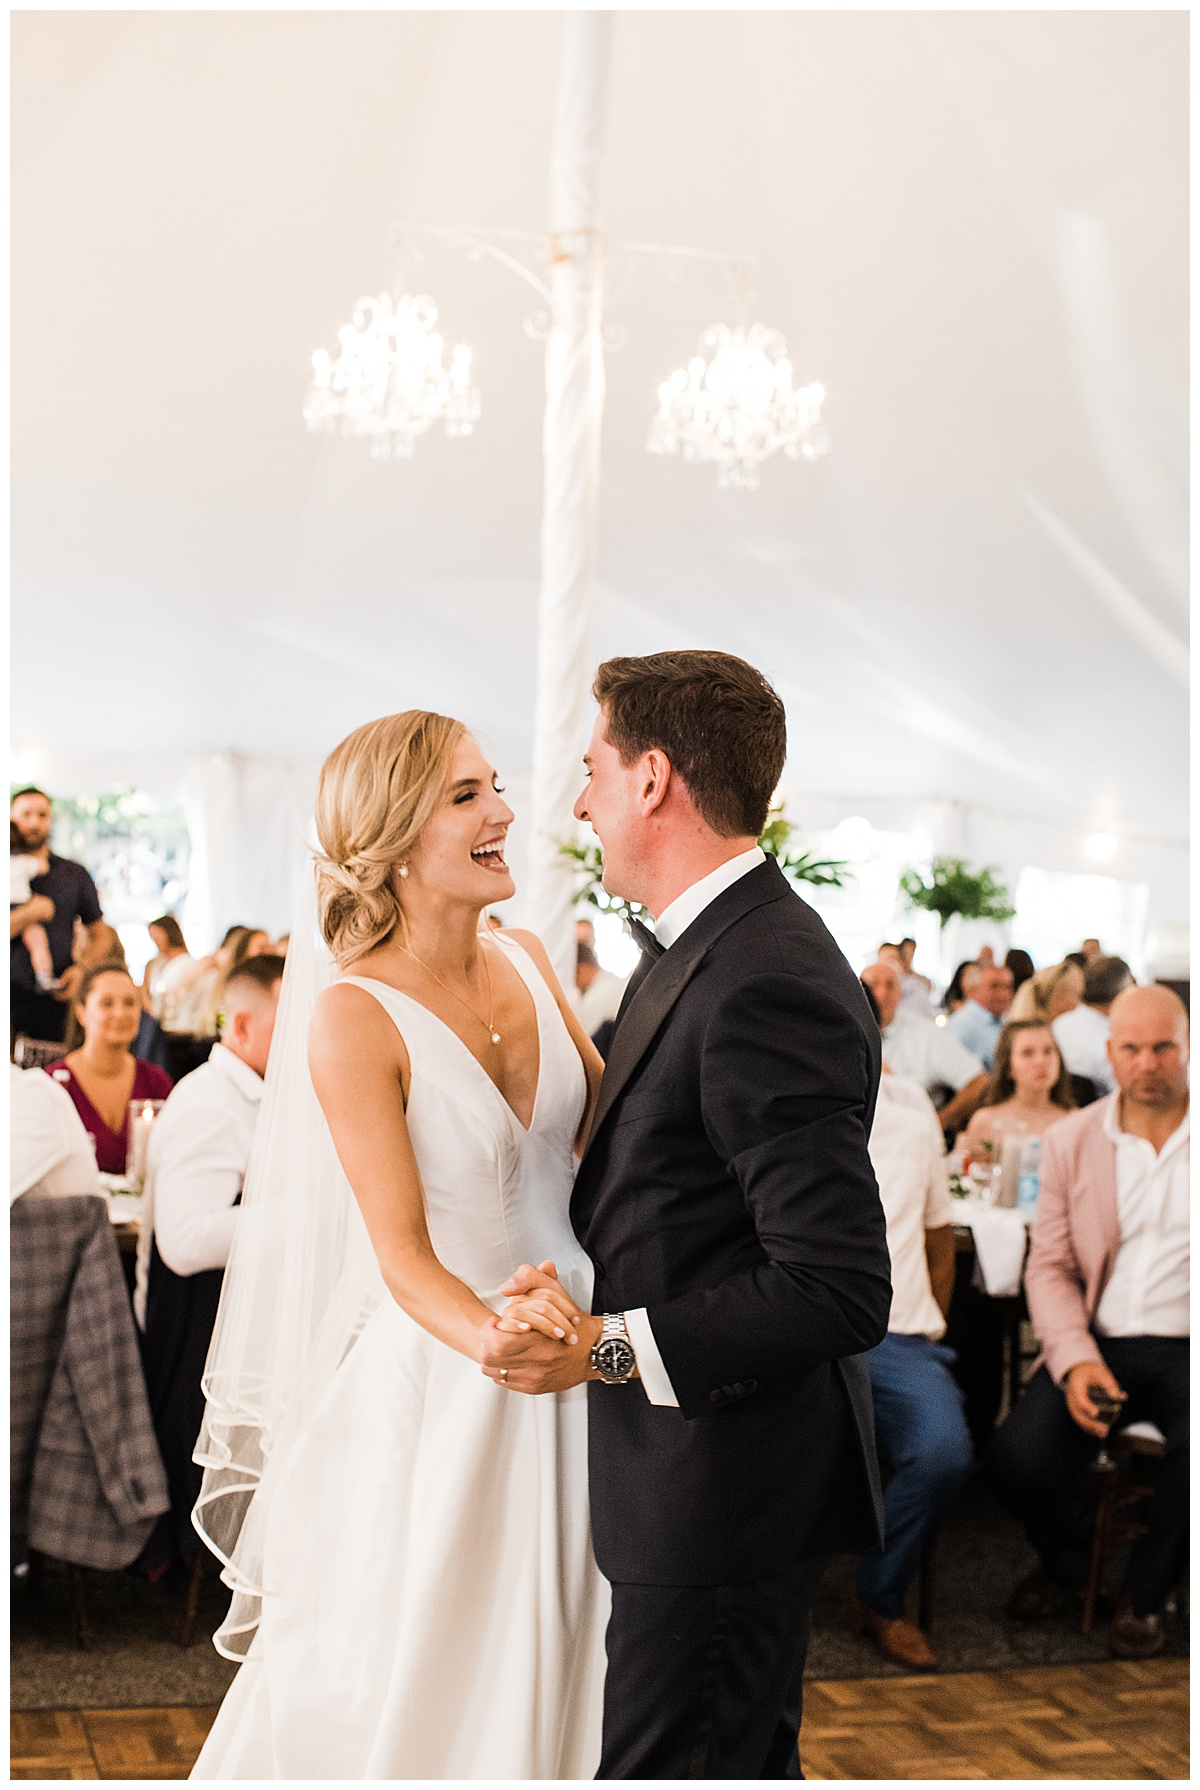 Bride and groom laughing during first dance  Ontario wedding photographer  Toronto wedding photographer  3photography